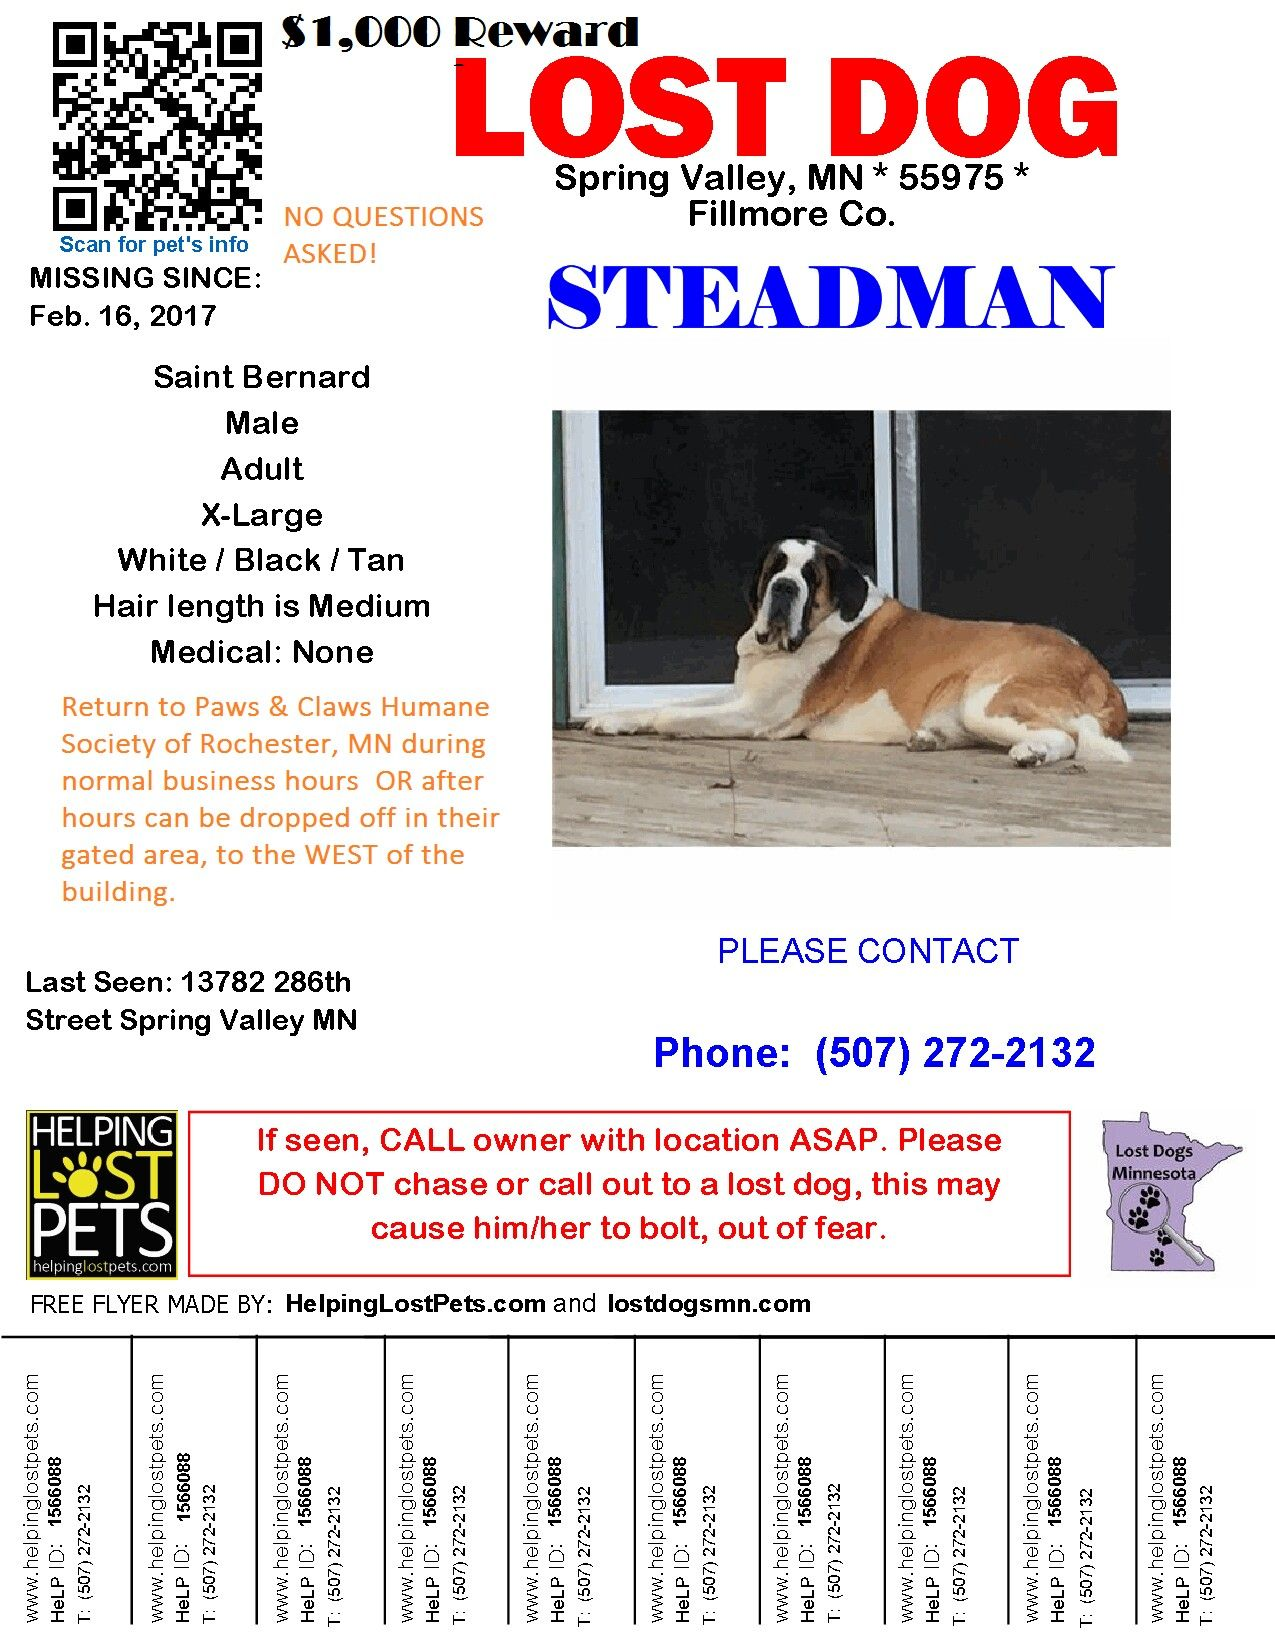 1000 Reward Dog Stolen With Images Losing A Dog Dogs Saint Bernard